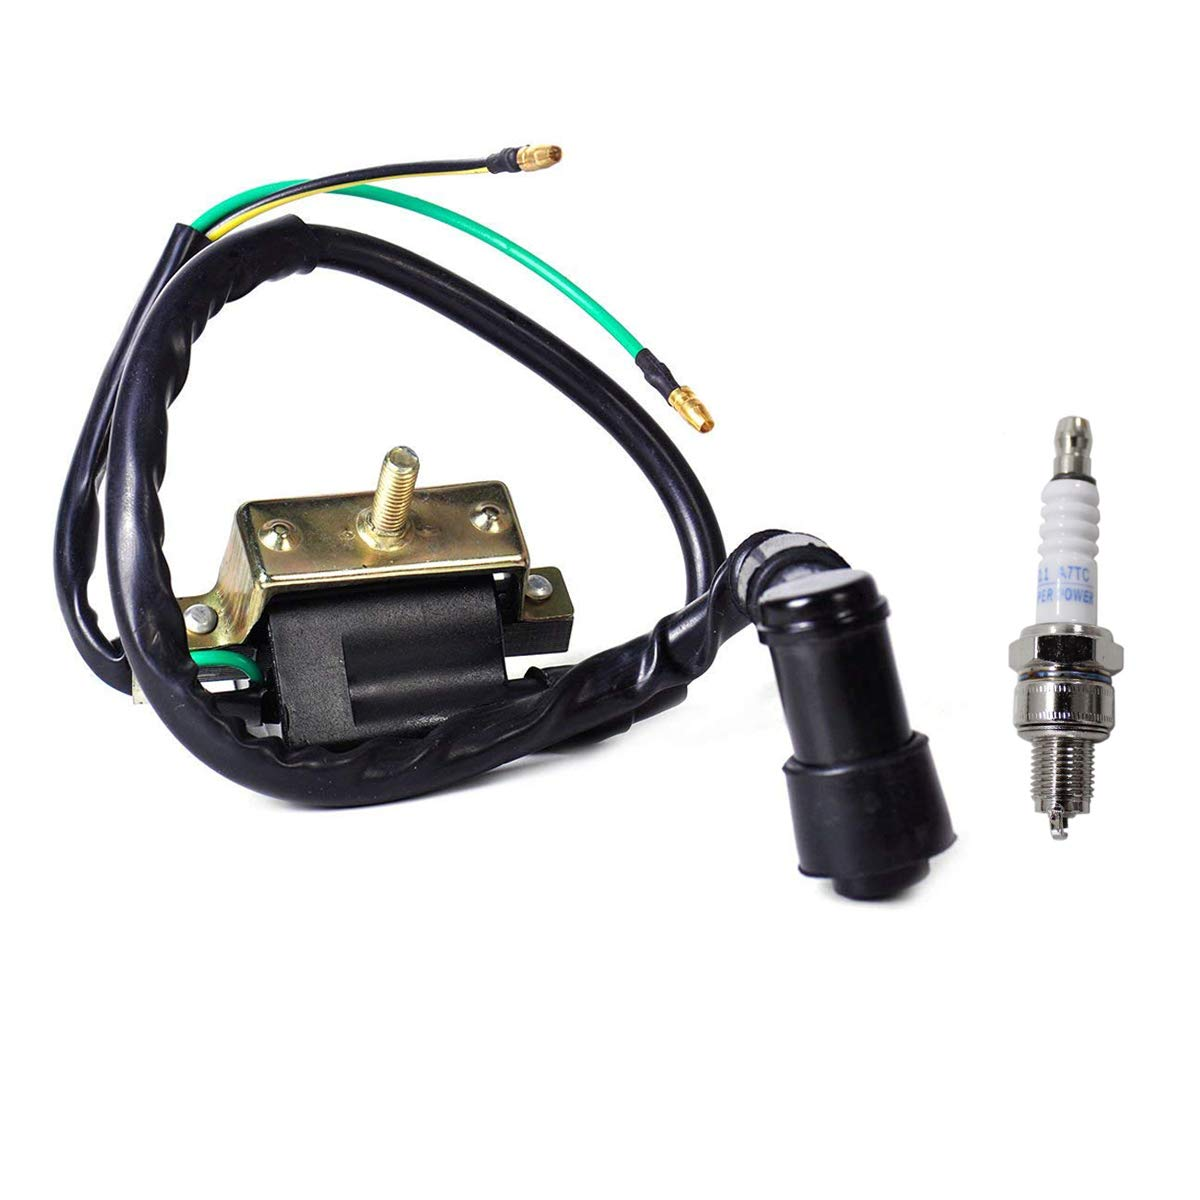 4 Stroke 2 Wire Ignition Coil And Spark Plug A7tc For 50cc 70 Cc Atv Wiring 90cc